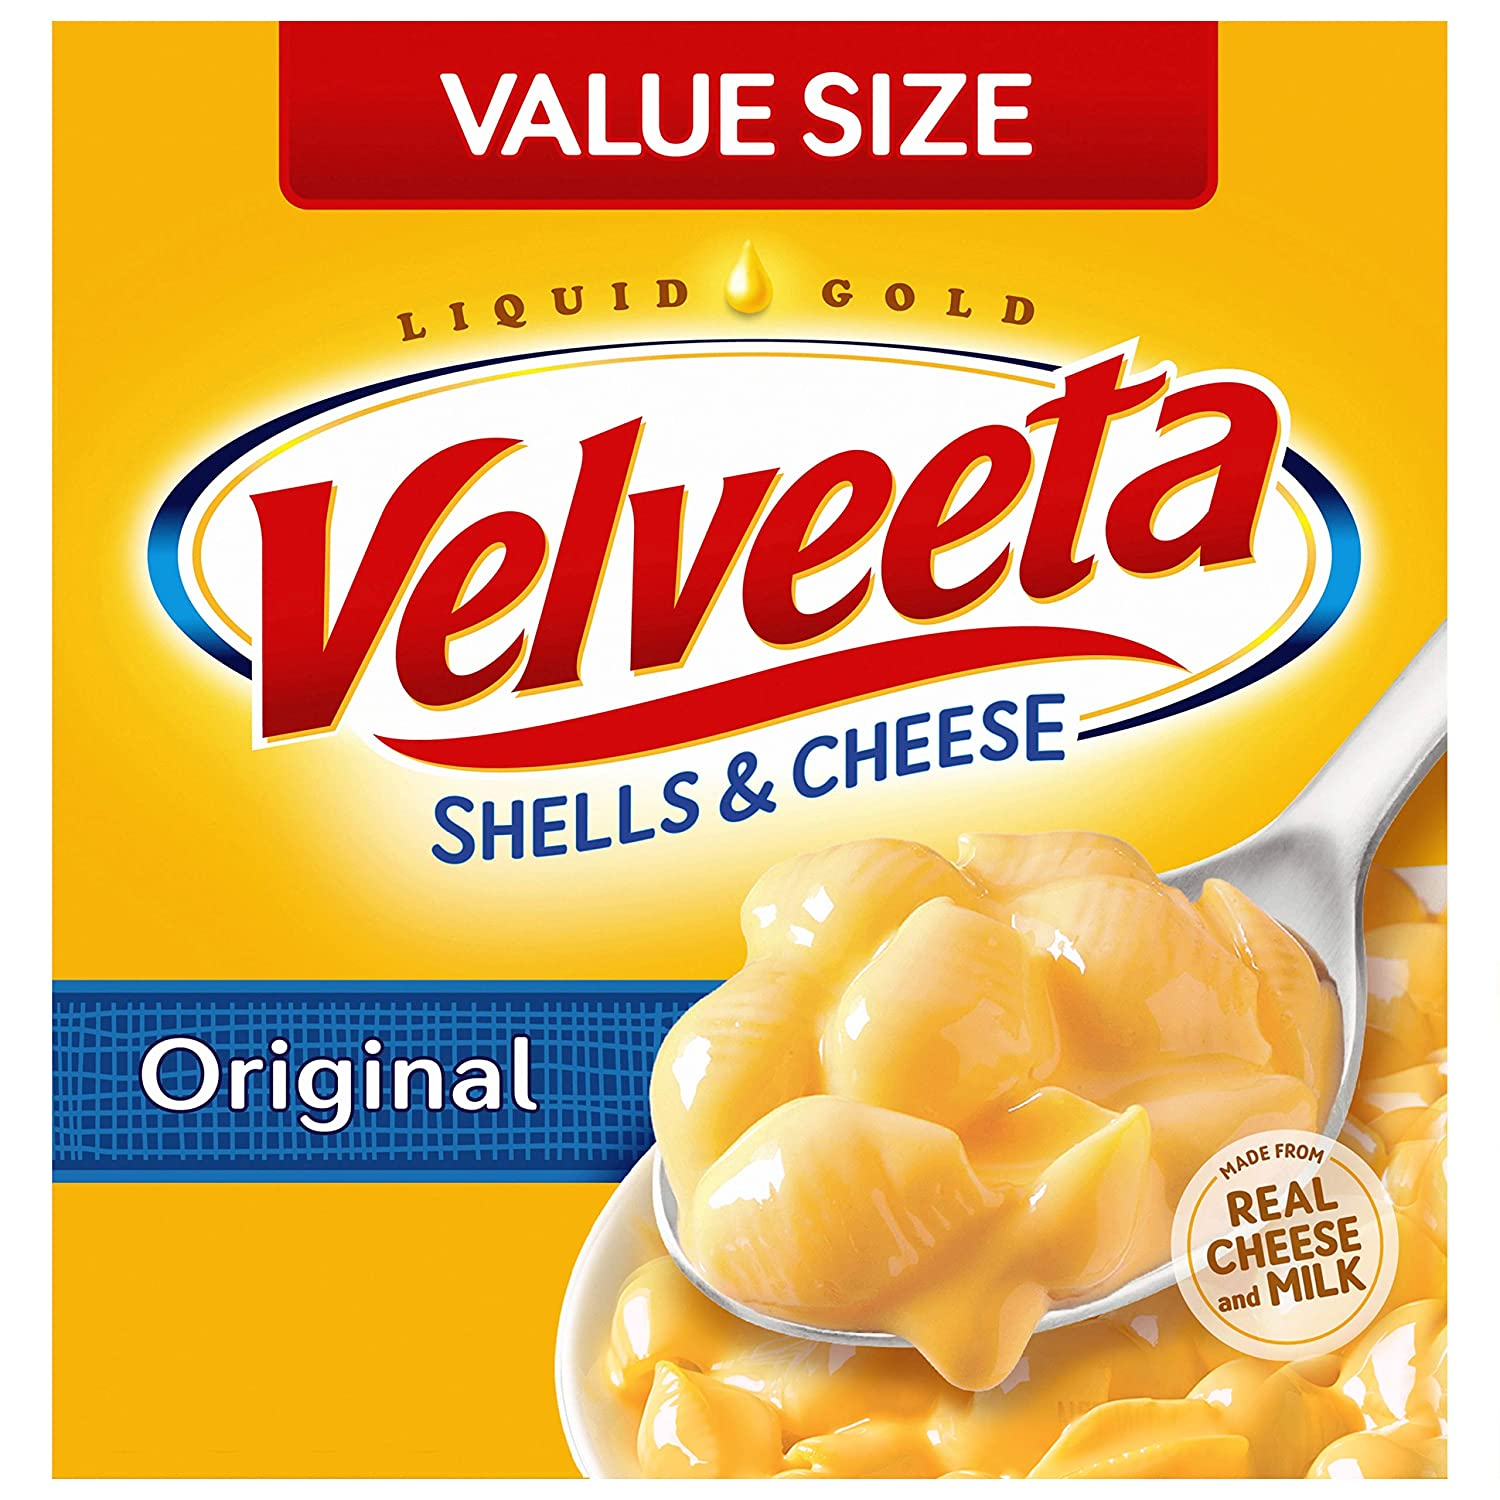 Velveeta Original Shells and Cheese Meal Value Size (24 oz Boxes, Pack of 3)